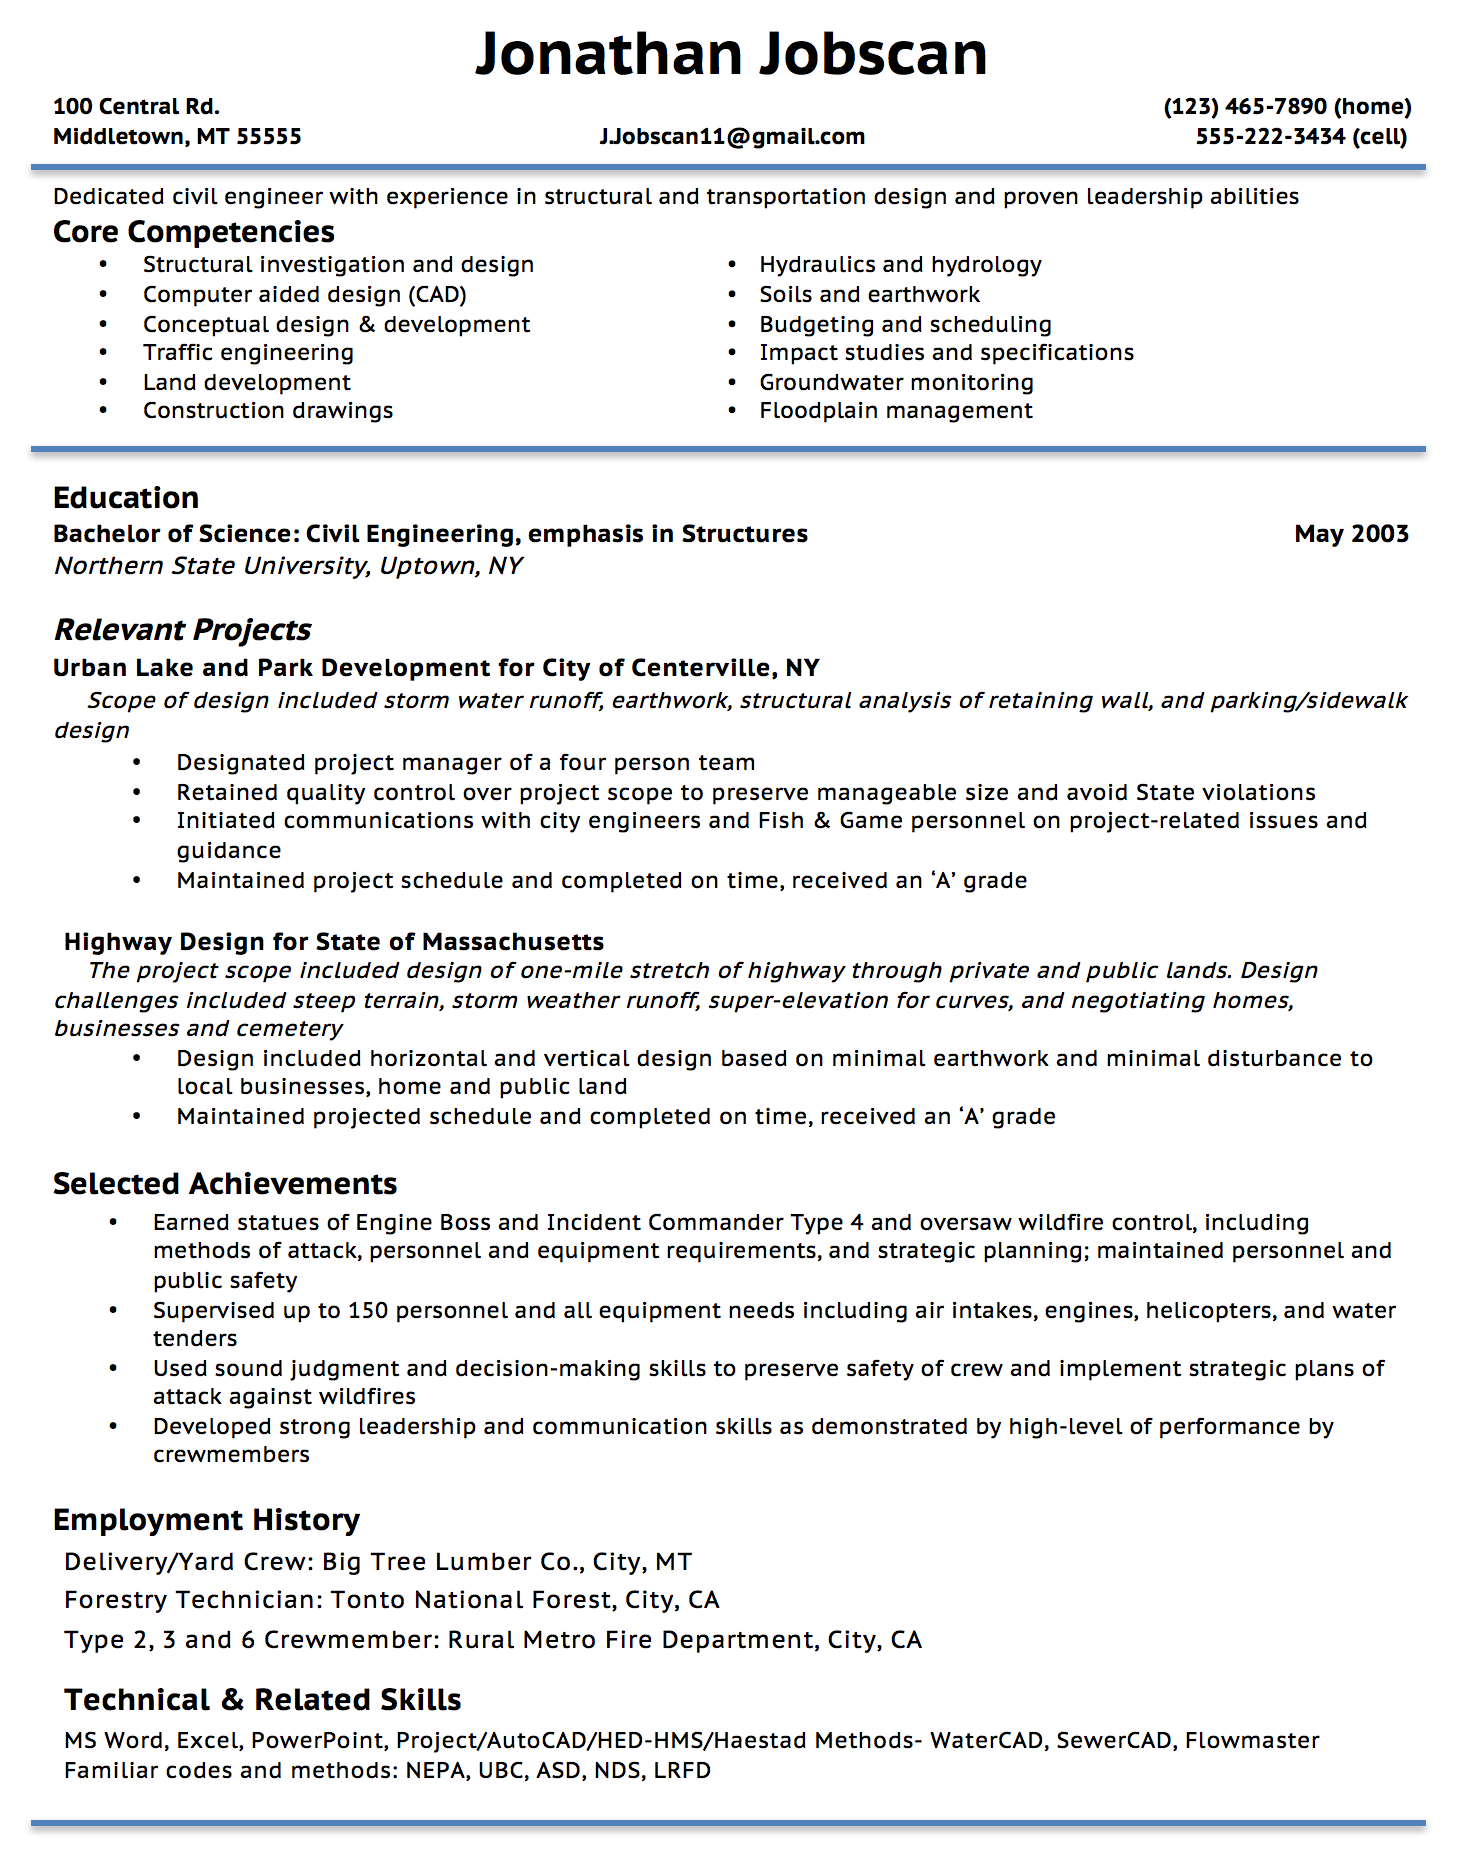 Picnictoimpeachus  Unusual Resume Writing Guide  Jobscan With Great Example Of A Functional Resume Format With Comely Resume For Medical Assistant Also Sample Professional Resume In Addition Resume Paper Walmart And Hr Generalist Resume As Well As New Nurse Resume Additionally Example Resume Objectives From Jobscanco With Picnictoimpeachus  Great Resume Writing Guide  Jobscan With Comely Example Of A Functional Resume Format And Unusual Resume For Medical Assistant Also Sample Professional Resume In Addition Resume Paper Walmart From Jobscanco